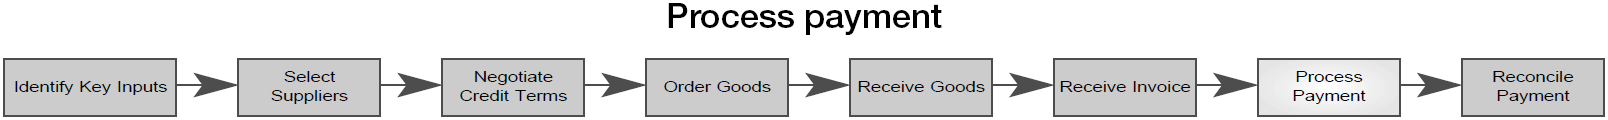 process the payment